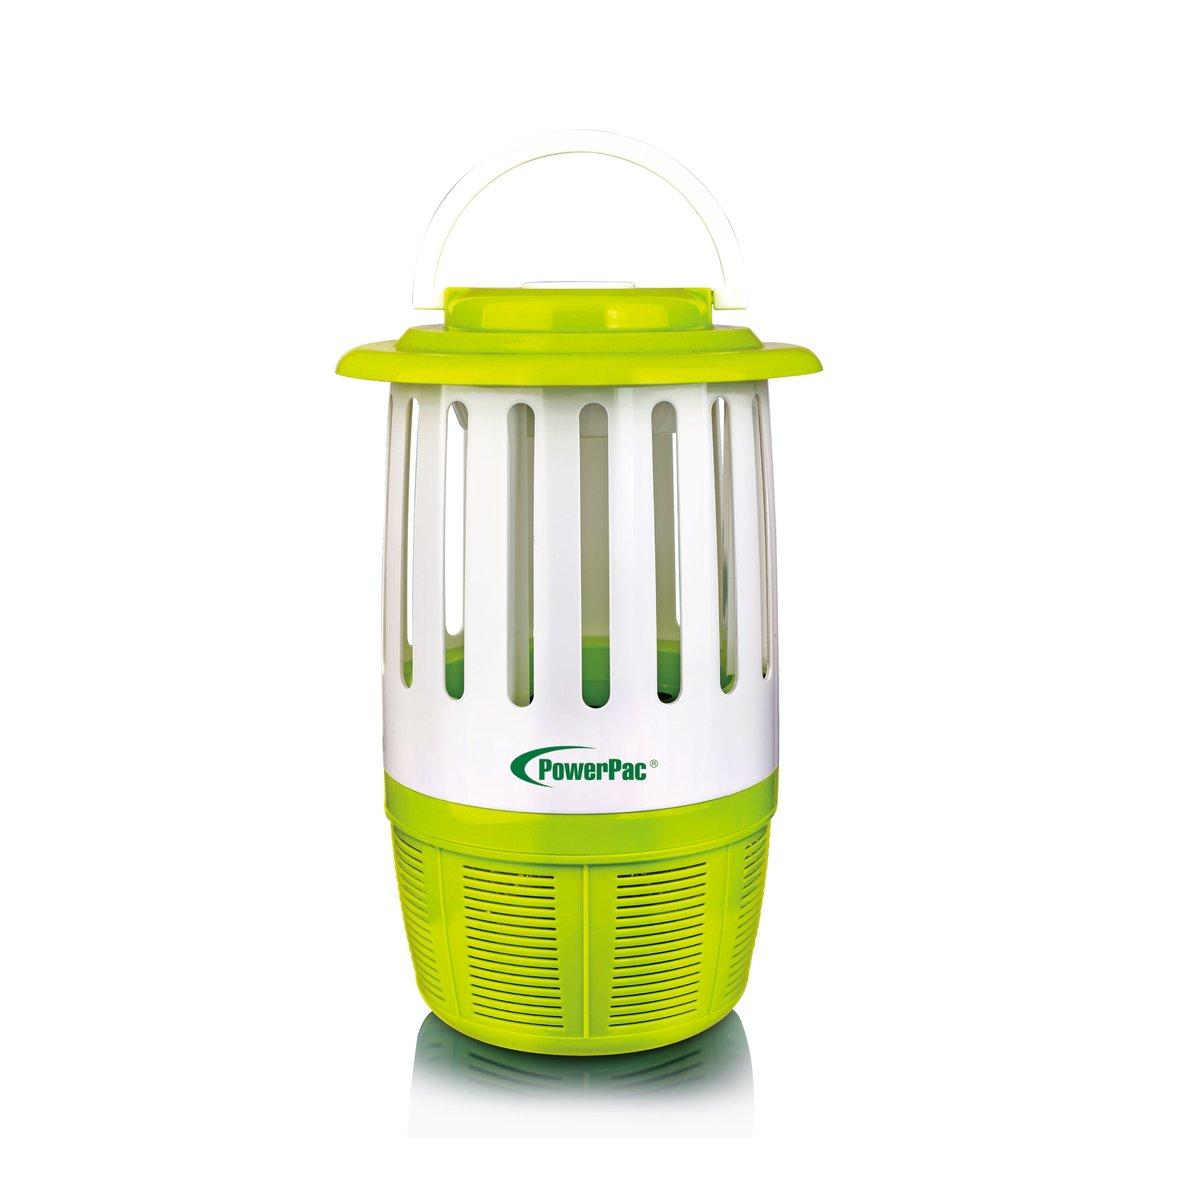 PowerPac LED Mosquito Trap Pest Repellent with Suction Fan (PP2233)